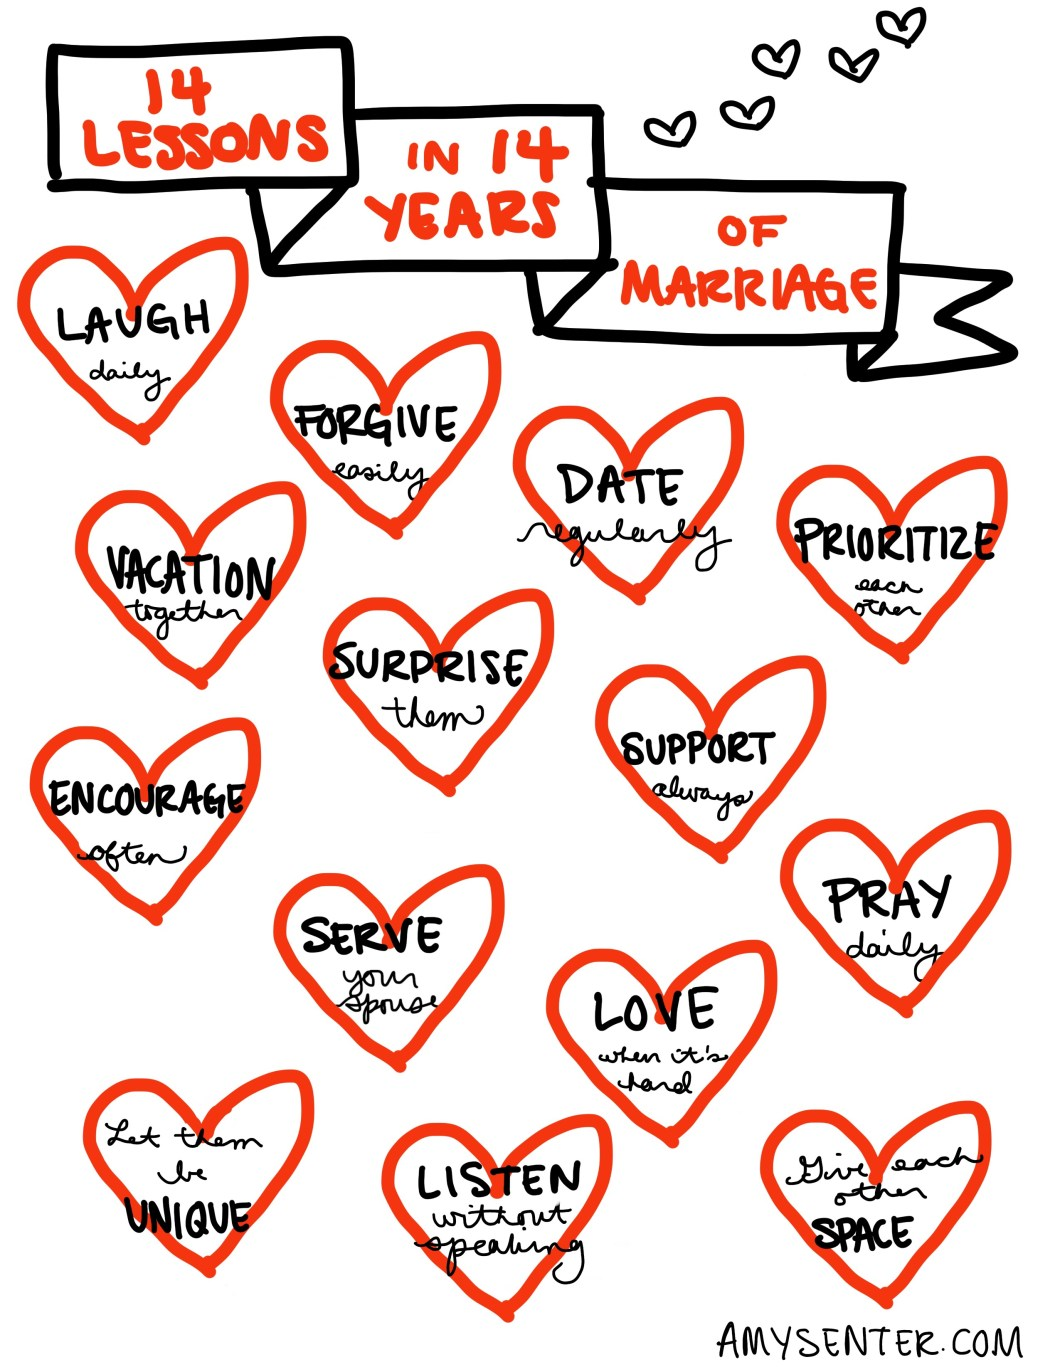 14 lessons in 14 years of marriage printable